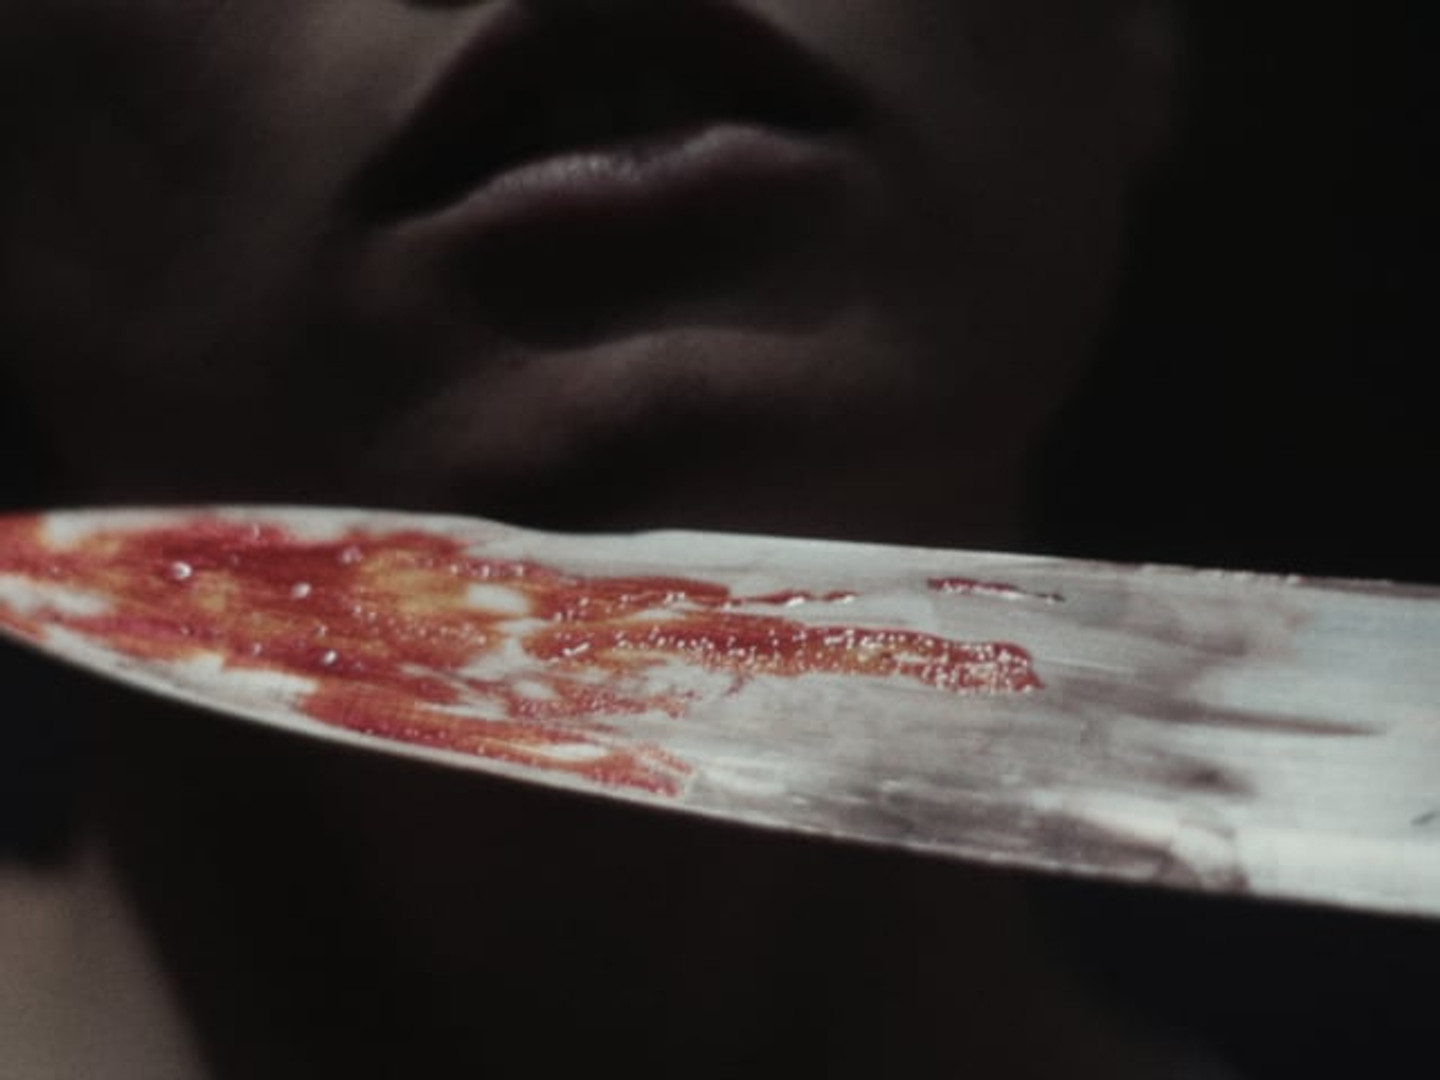 SHAED   Silver Knife Director's Cut   Max Haben